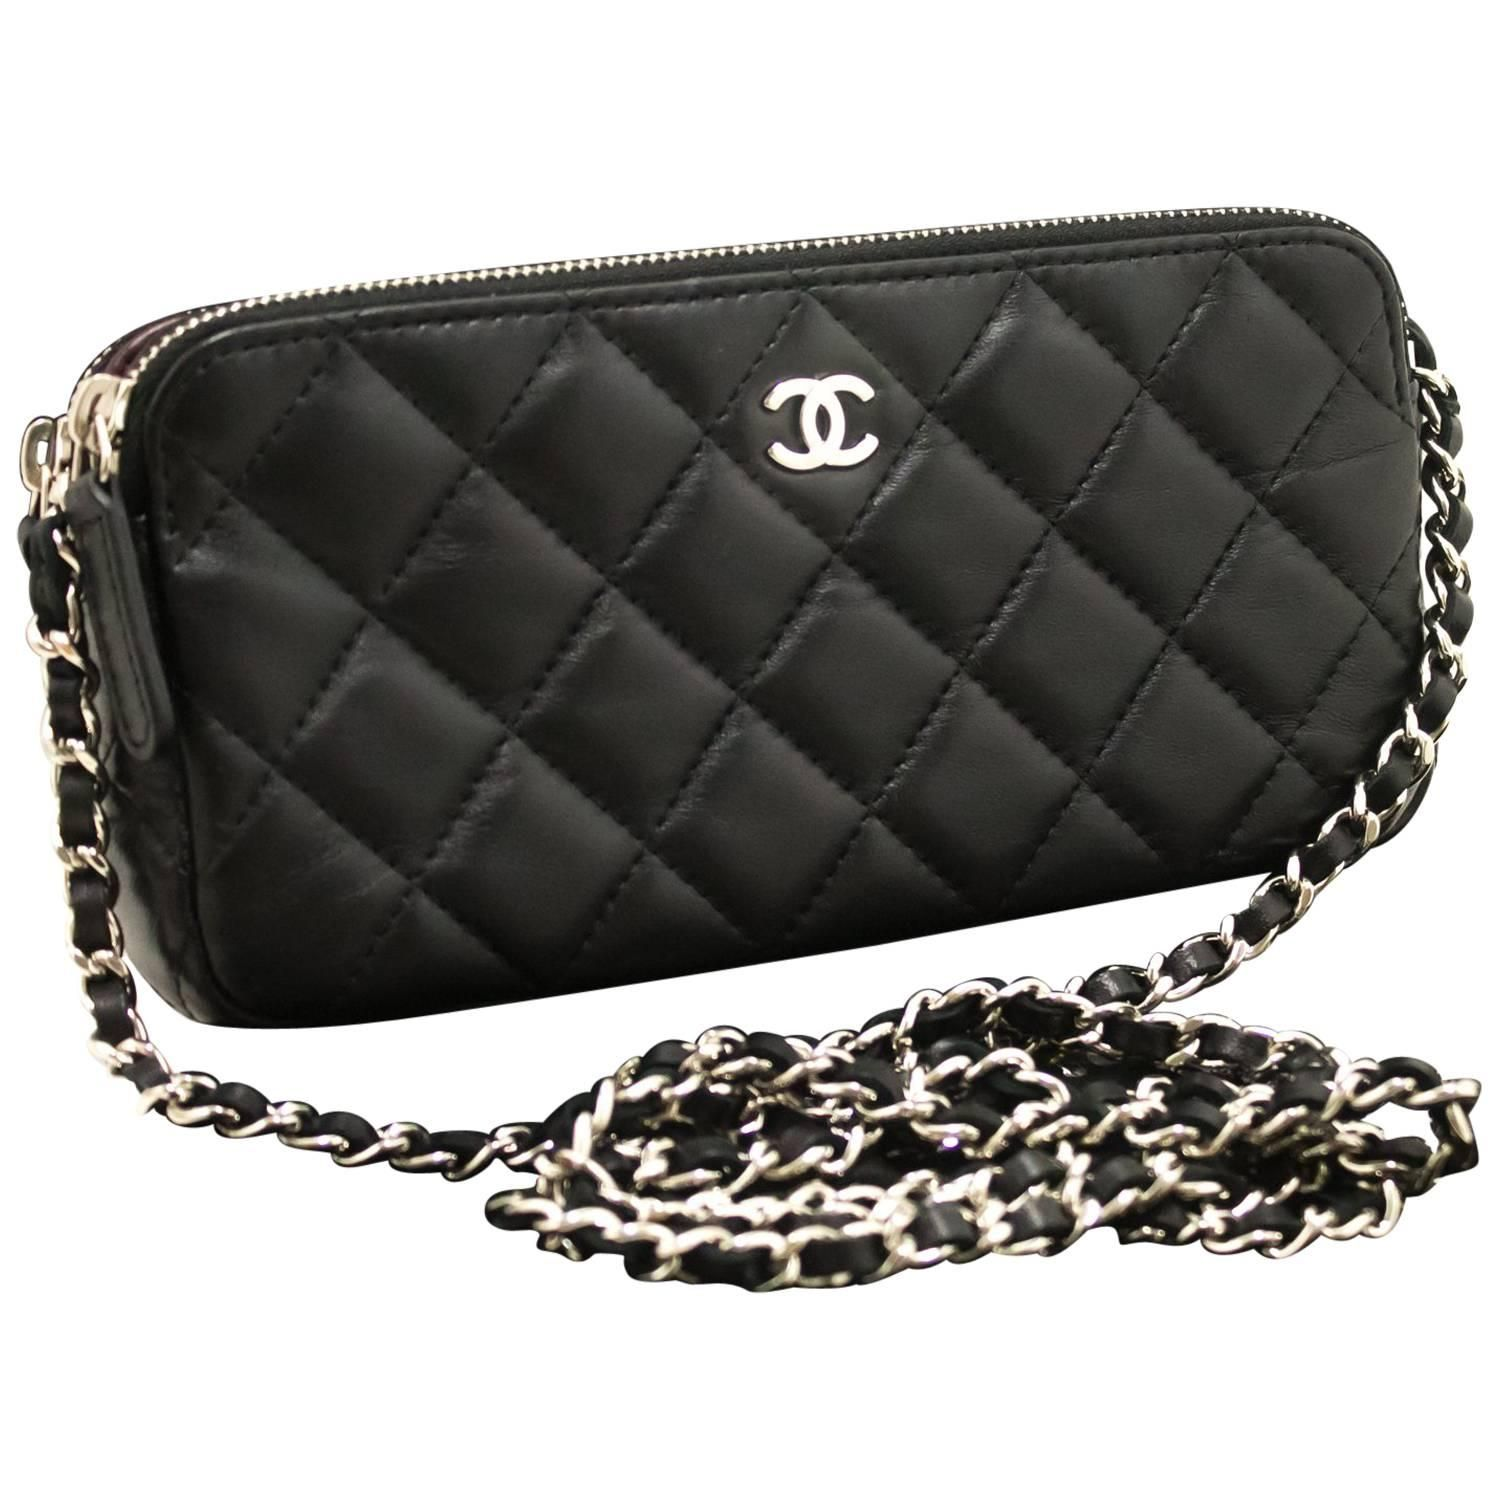 Chanel Wallet On Chain WOC Double Zip Chain Black Shoulder Bag ... d46f5c8ab8a6f